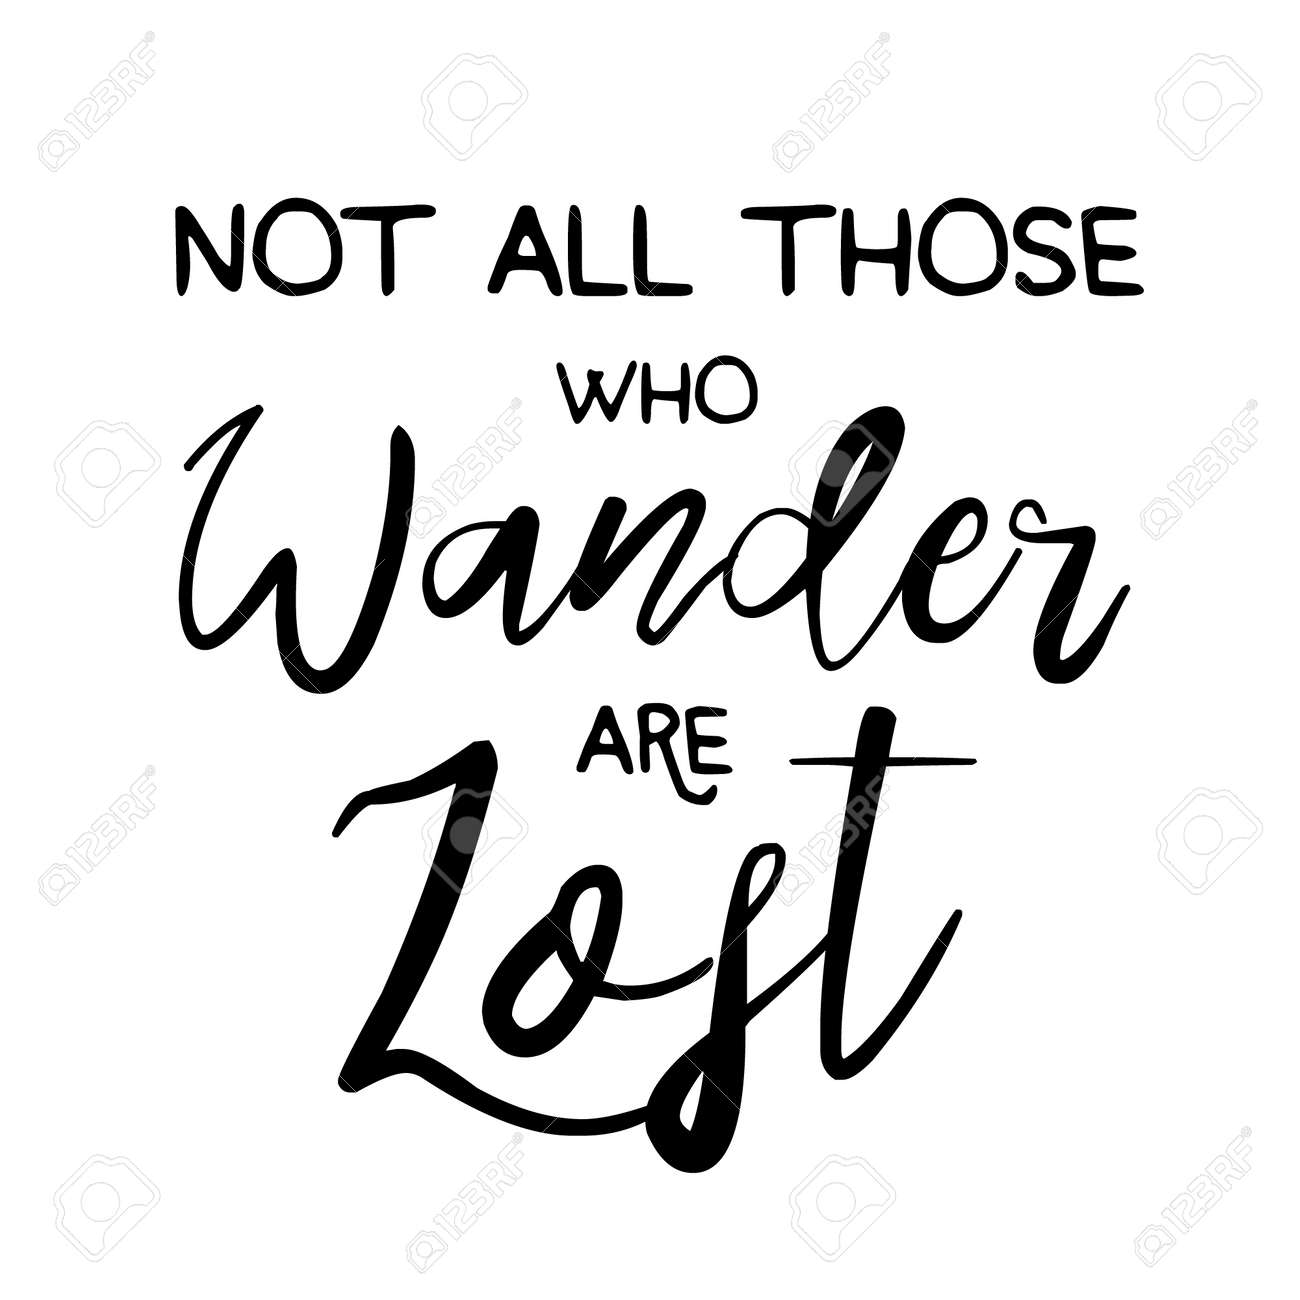 448a7c748a37 Not All those who wander are lost motivational lettering poster...